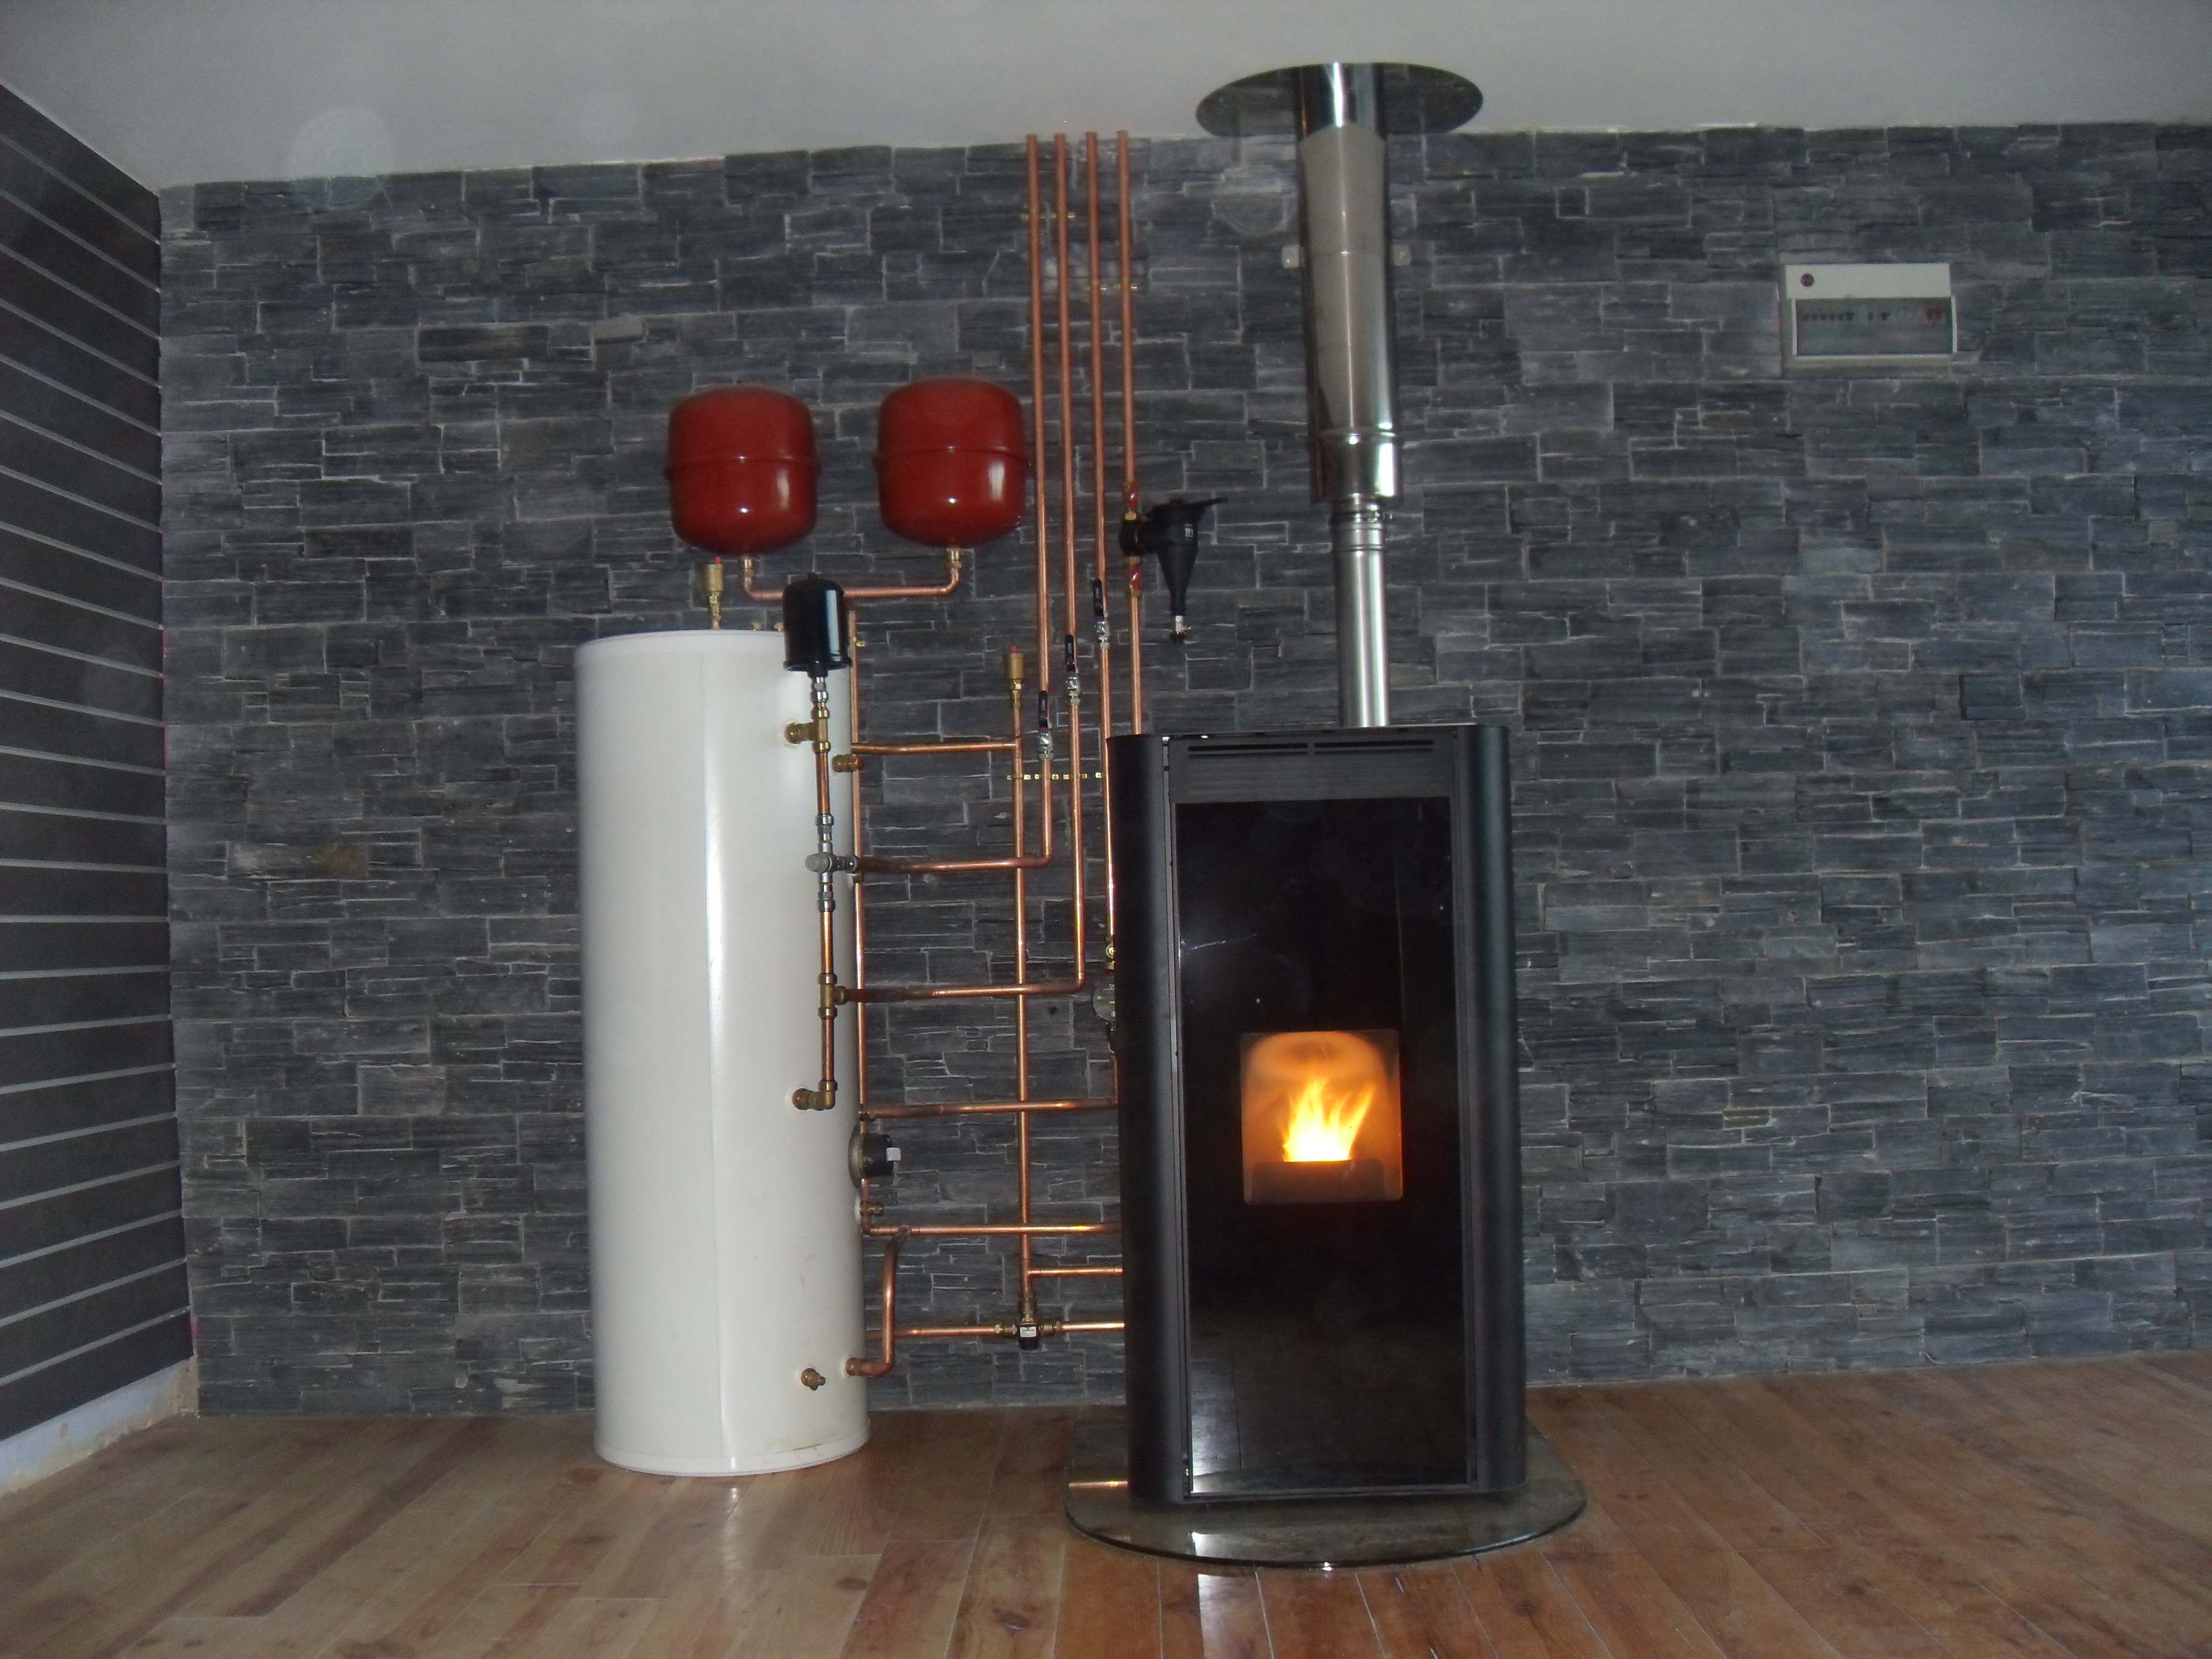 Aboc Biomass Stoves Amp Boilers